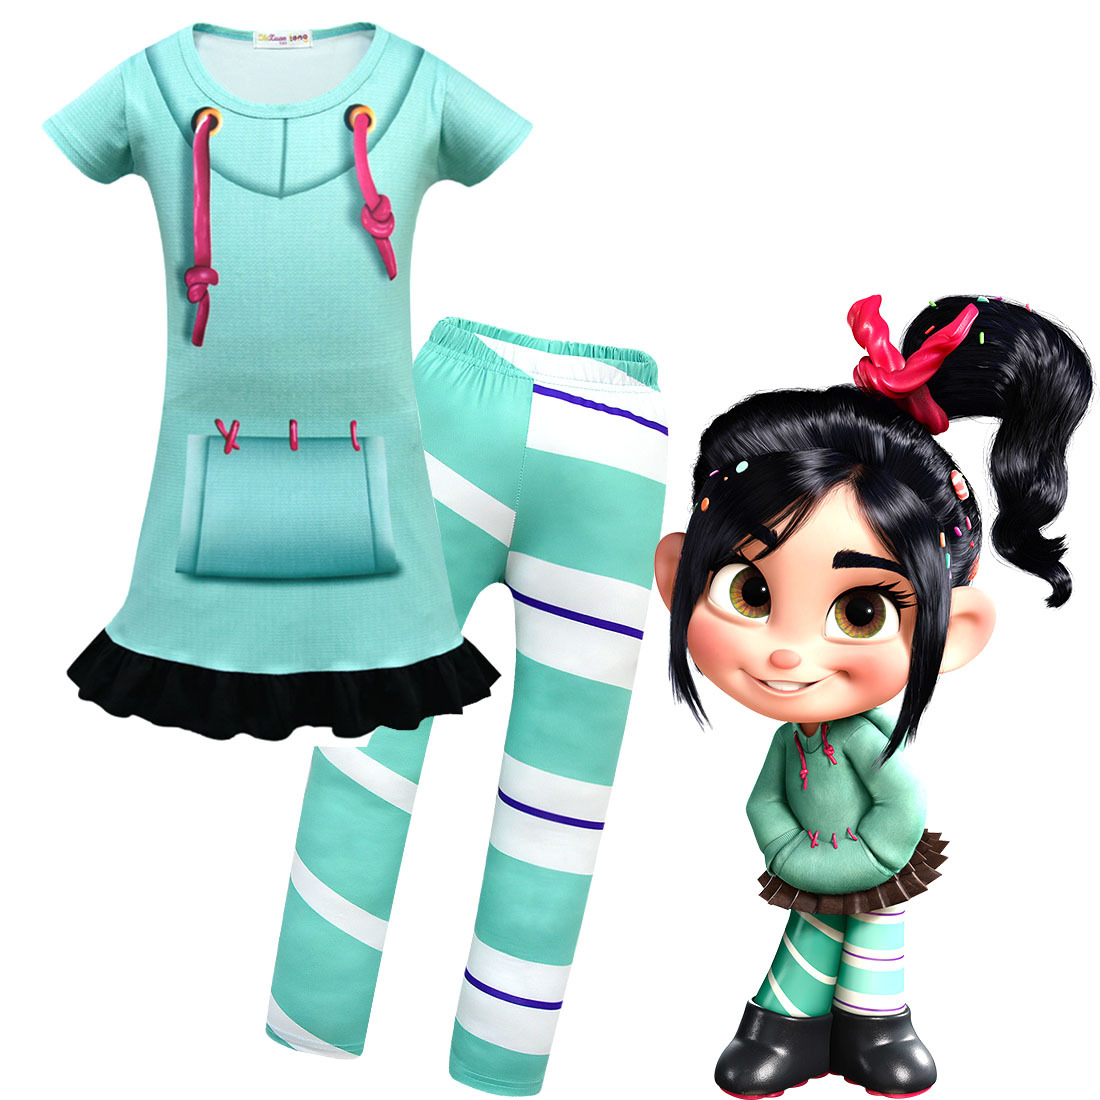 Movie Ralph Breaks the Internet: Wreck-It Ralph 2 Vanellope von Schweetz Cosplay Costume Children Kids Costume Halloween Costume